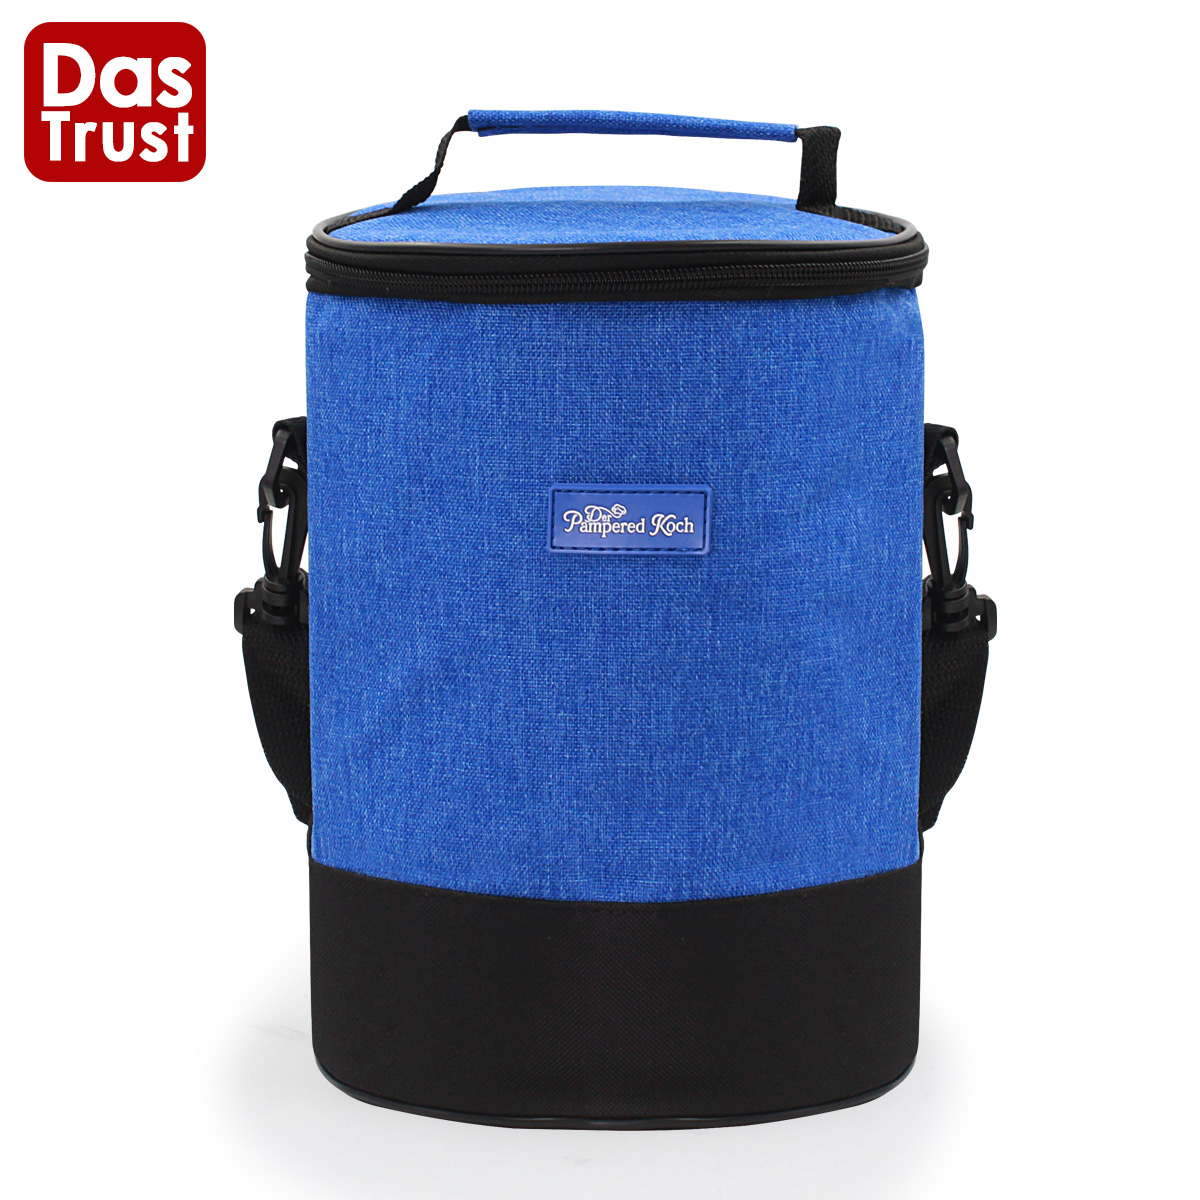 Thermostat thick ice pack lunch bag waterproof oxford cloth lunch bag lunch bag cooler bag fresh bag